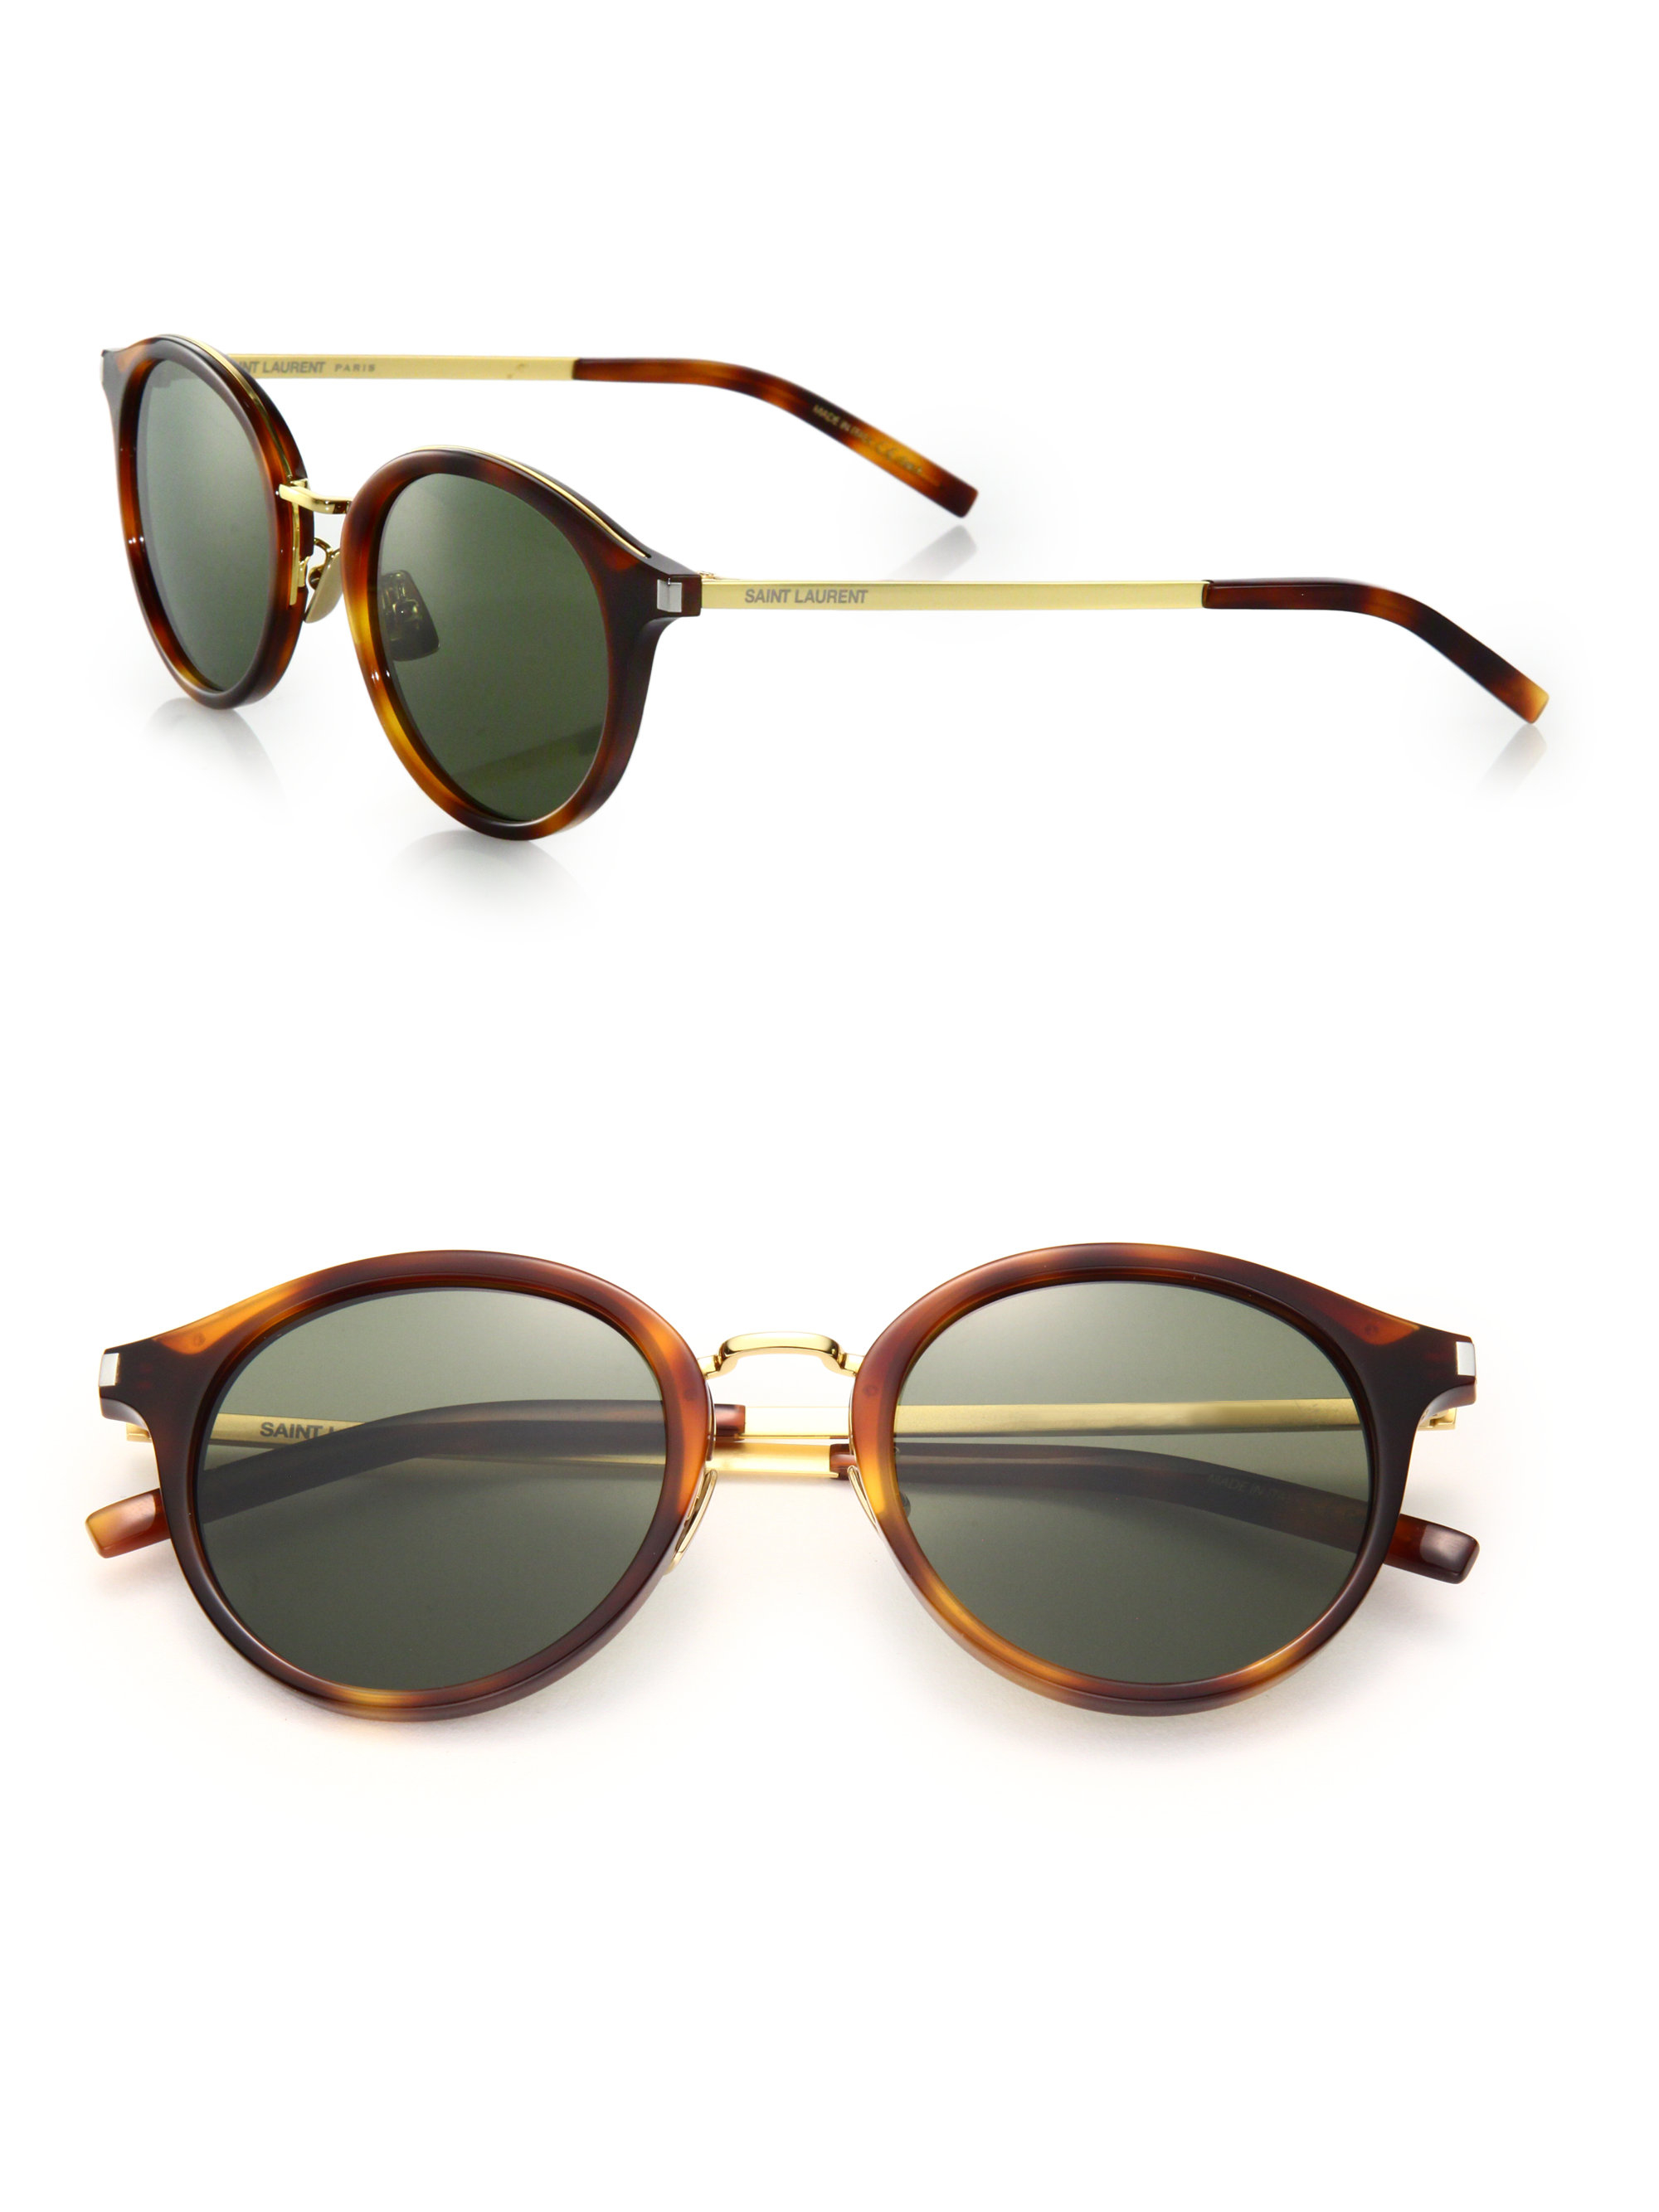 4f4caac2212 Saint Laurent 49mm Round Sunglasses in Brown for Men - Lyst